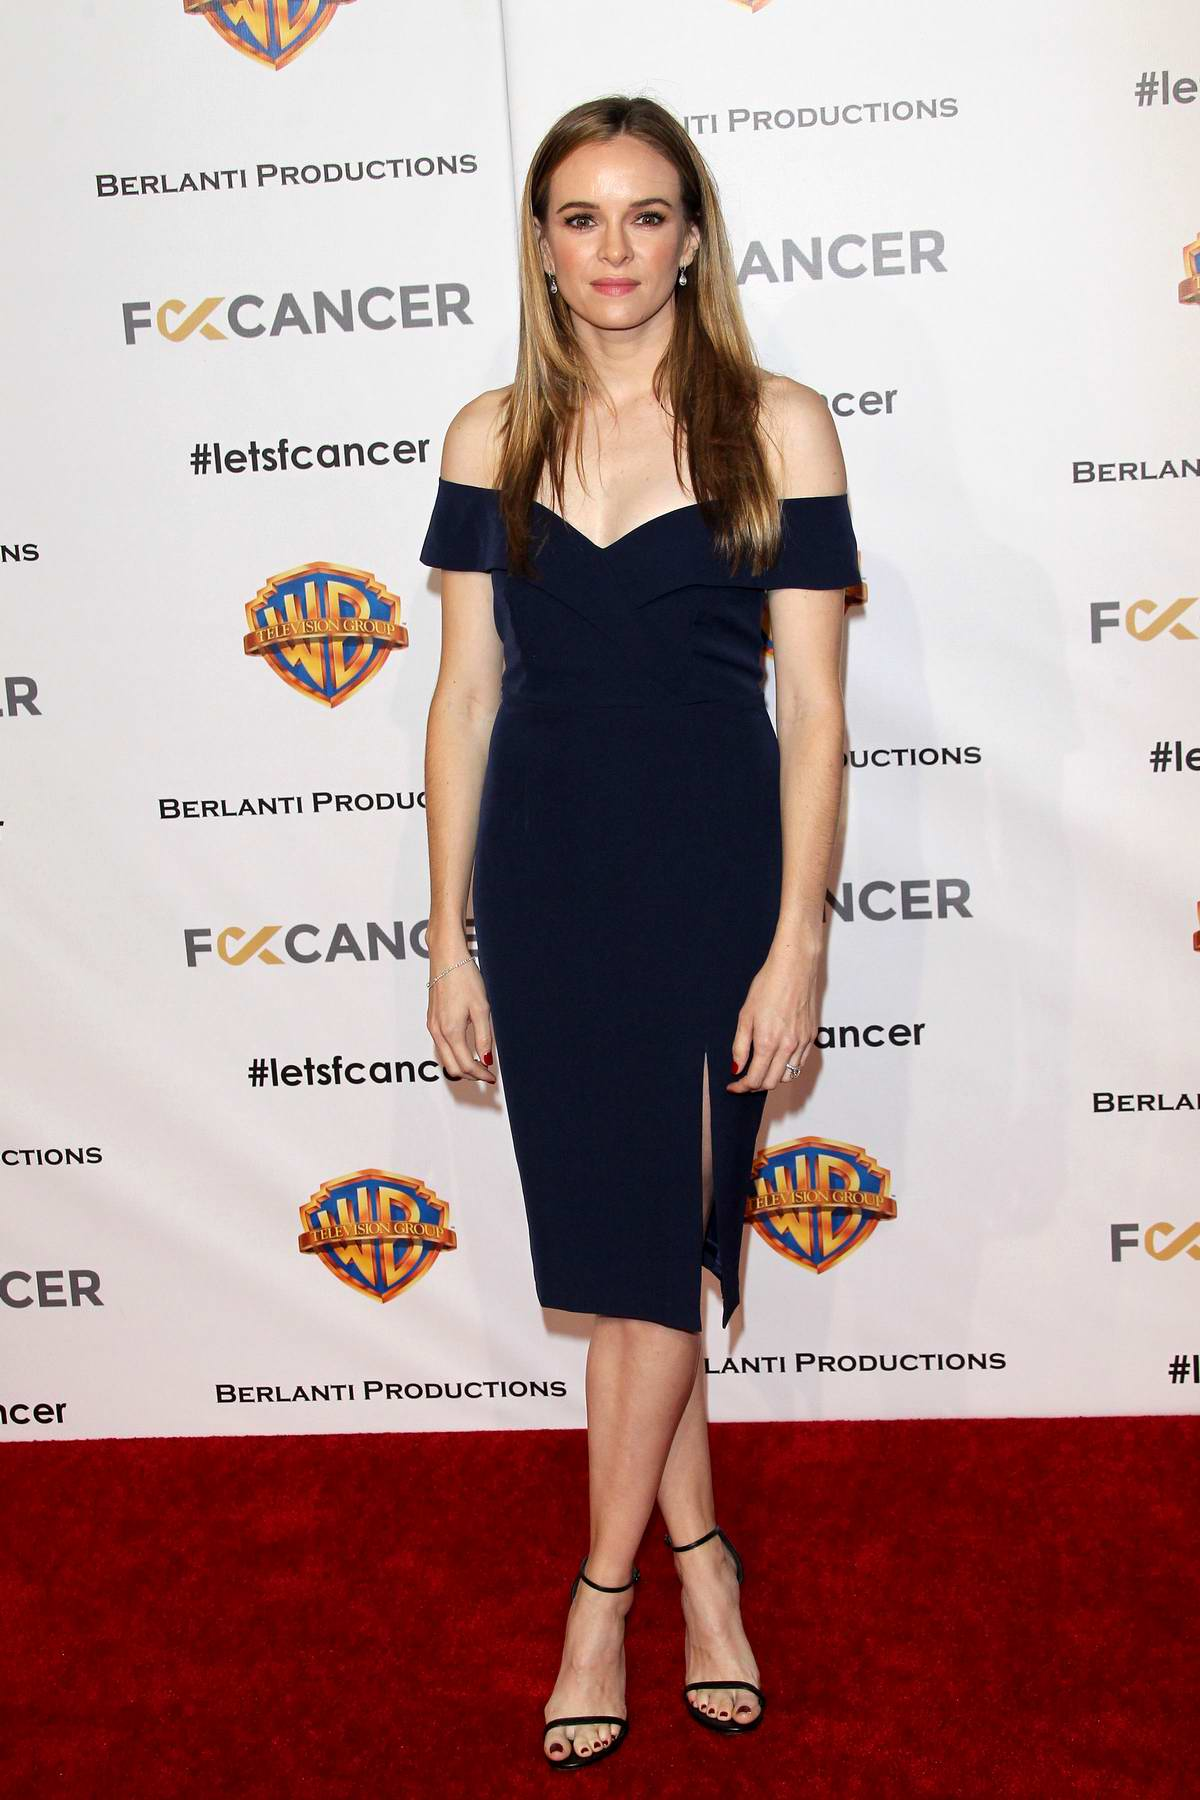 Danielle Panabaker attends Fck Cancer's 1st Annual Barbara Berlanti Heroes Gala in Burbank, California